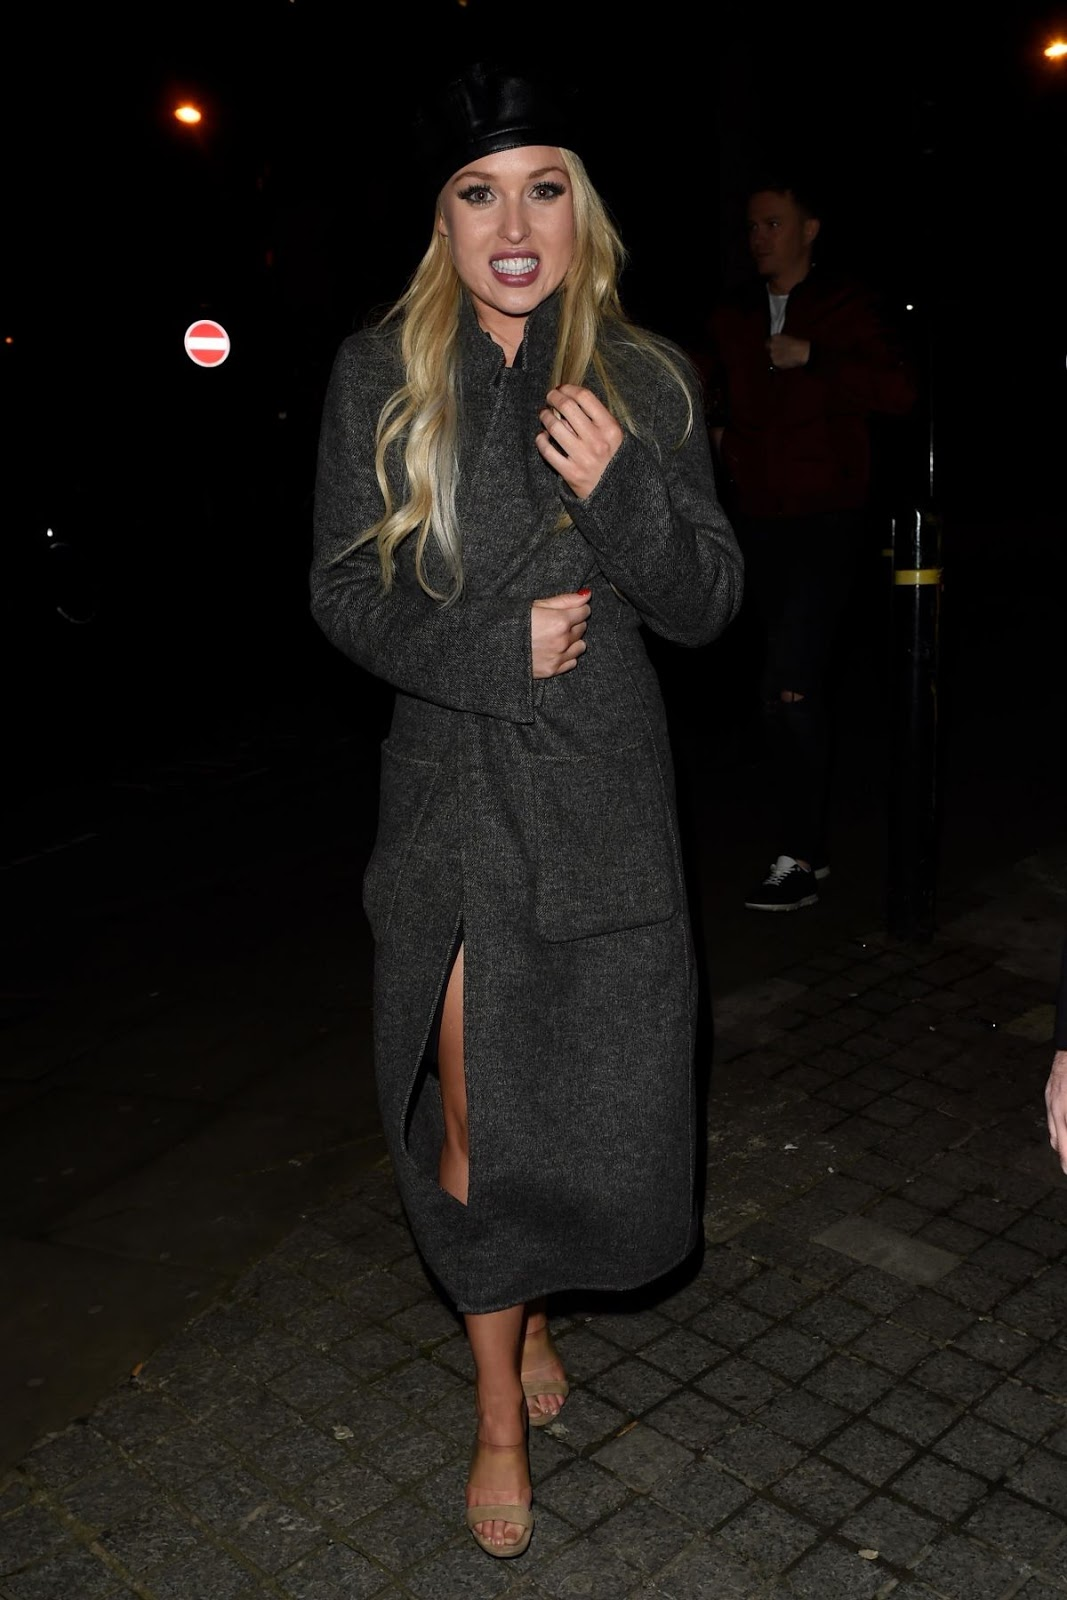 Photos of Jorgie Porter at Boutique Babez Fashion Range at Be Impossible Launch in Manchester